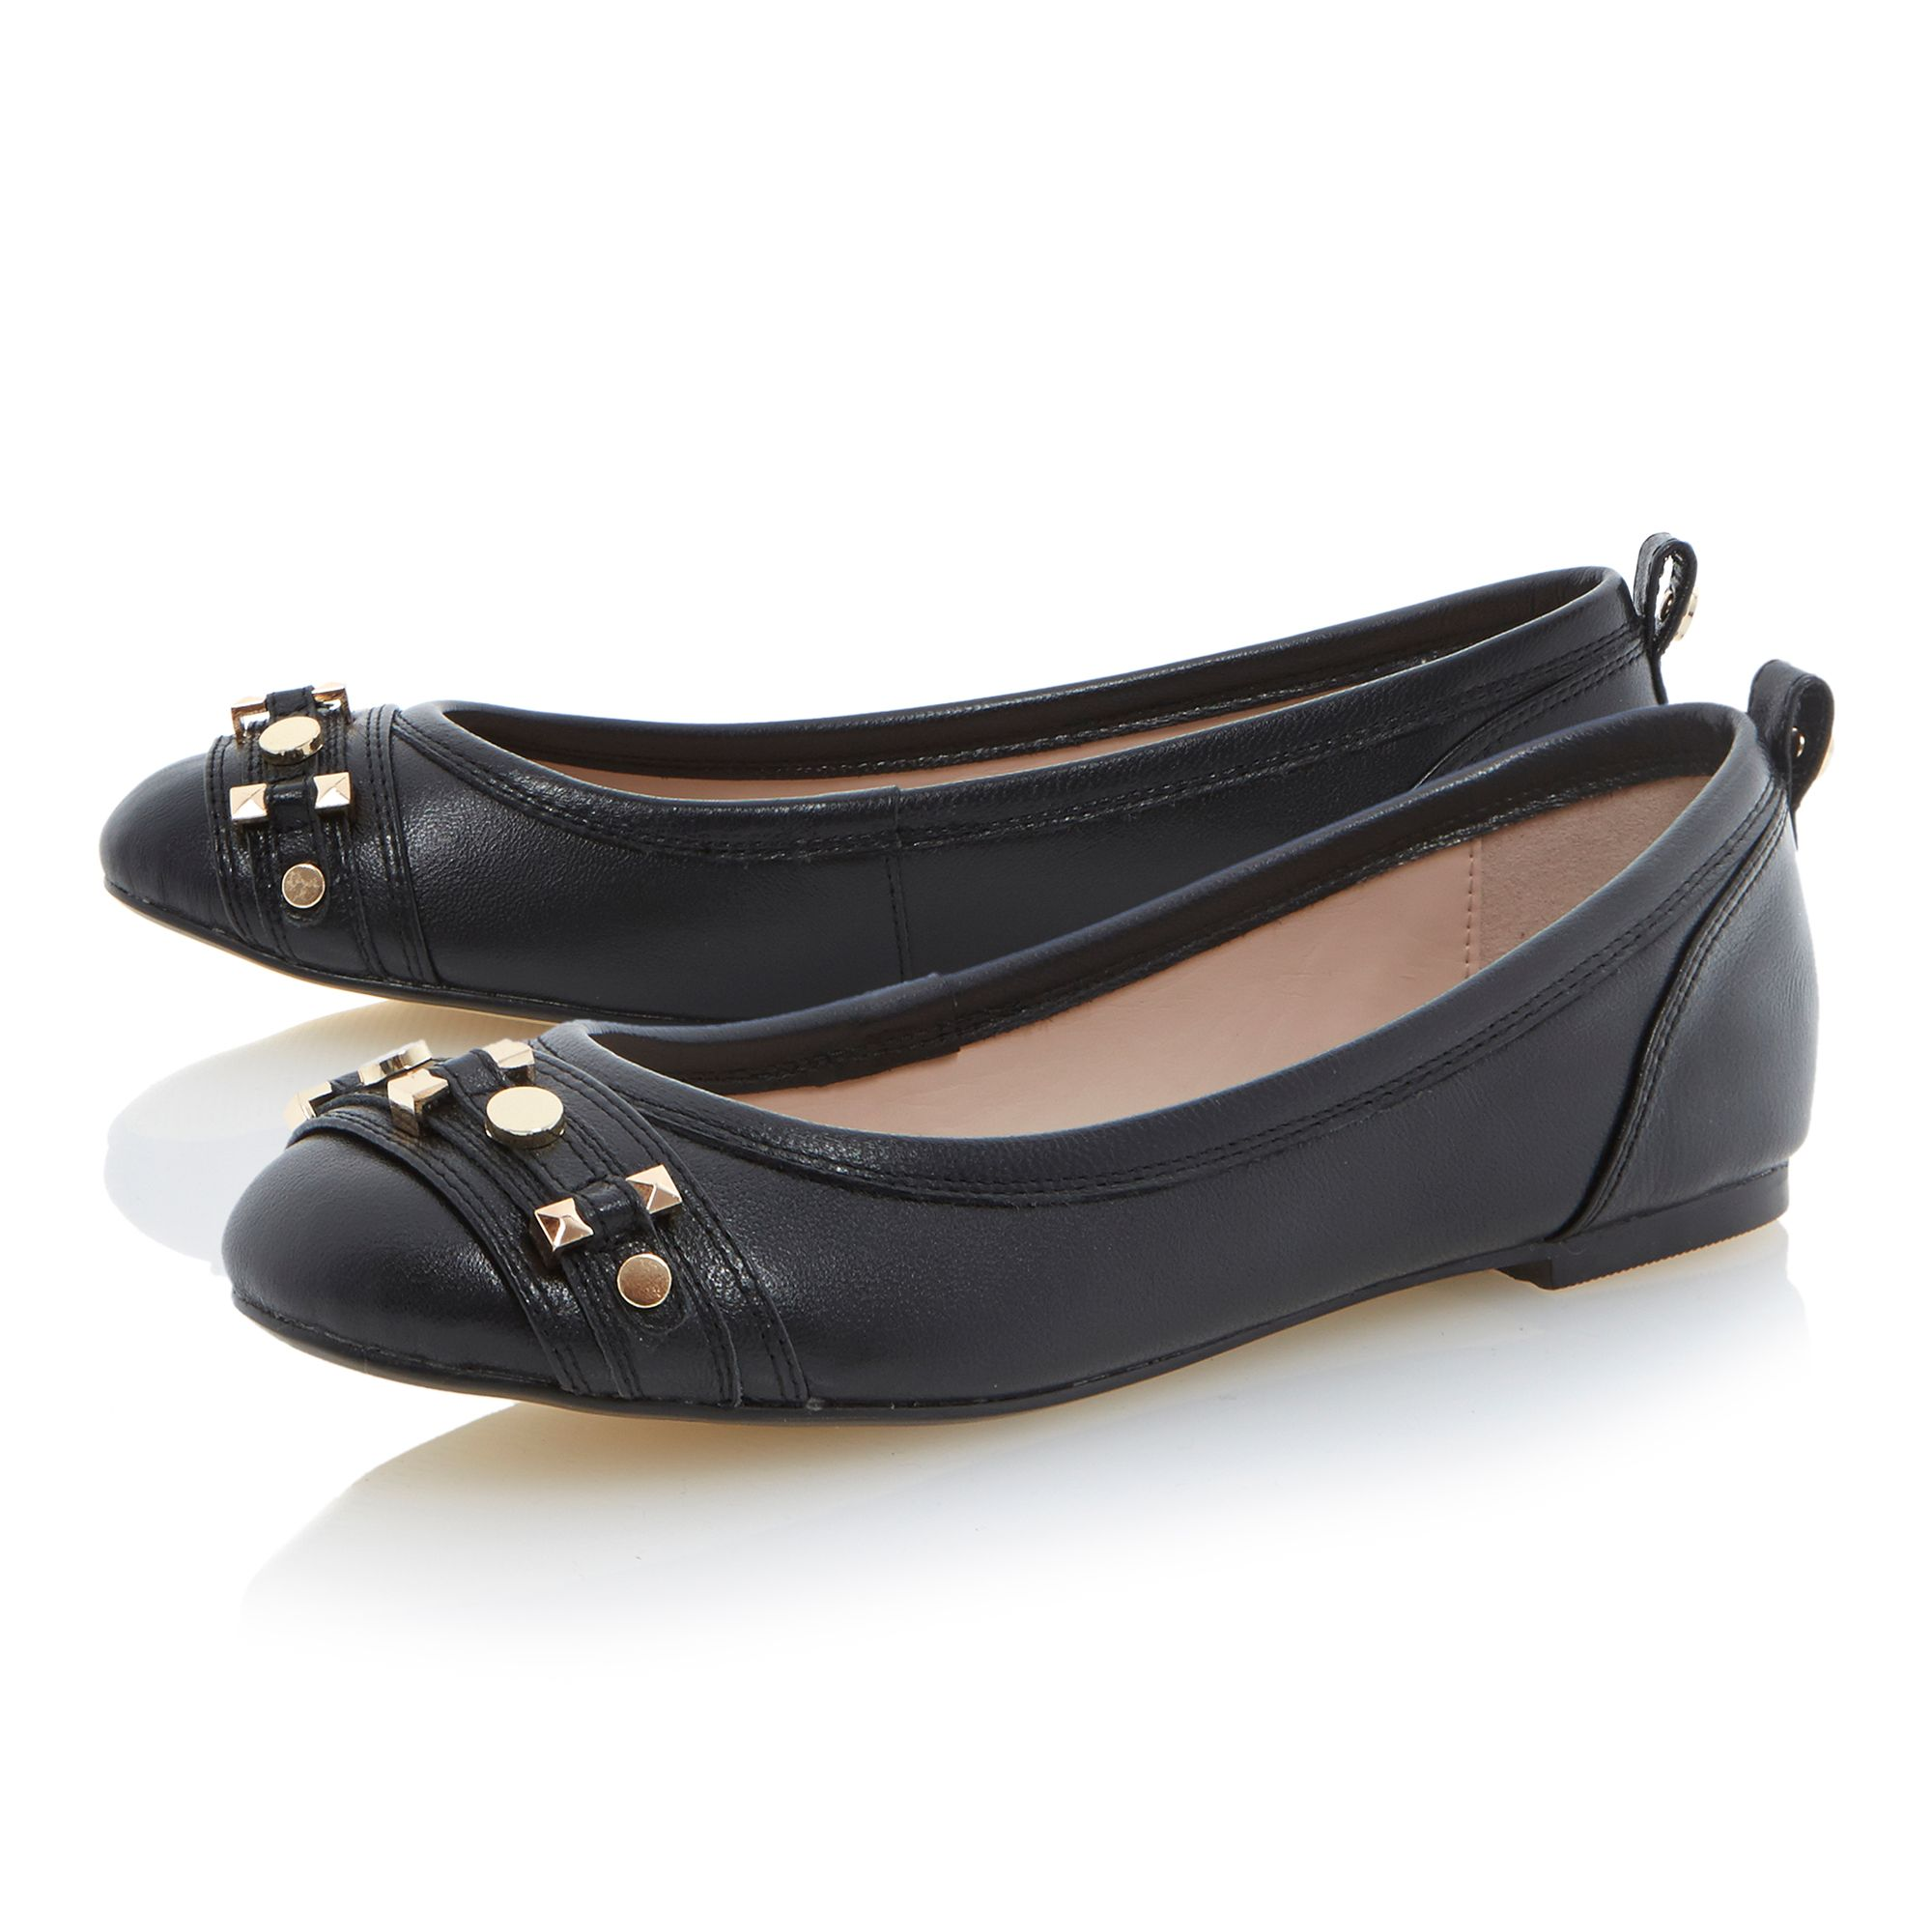 Marys hardware trim leather ballerina shoes